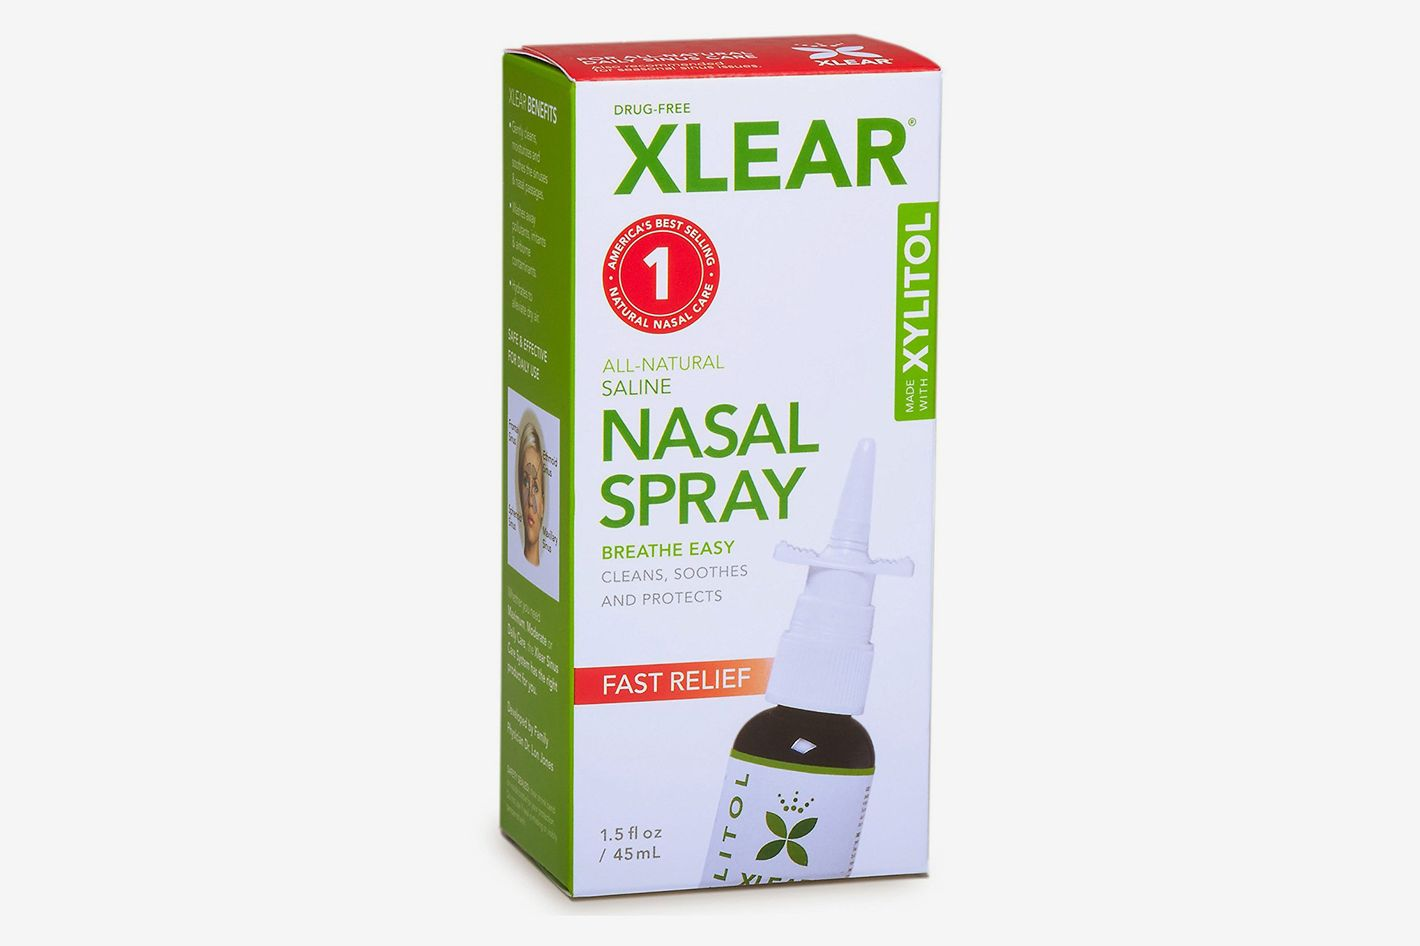 Xlear Natural Saline Nasal Spray